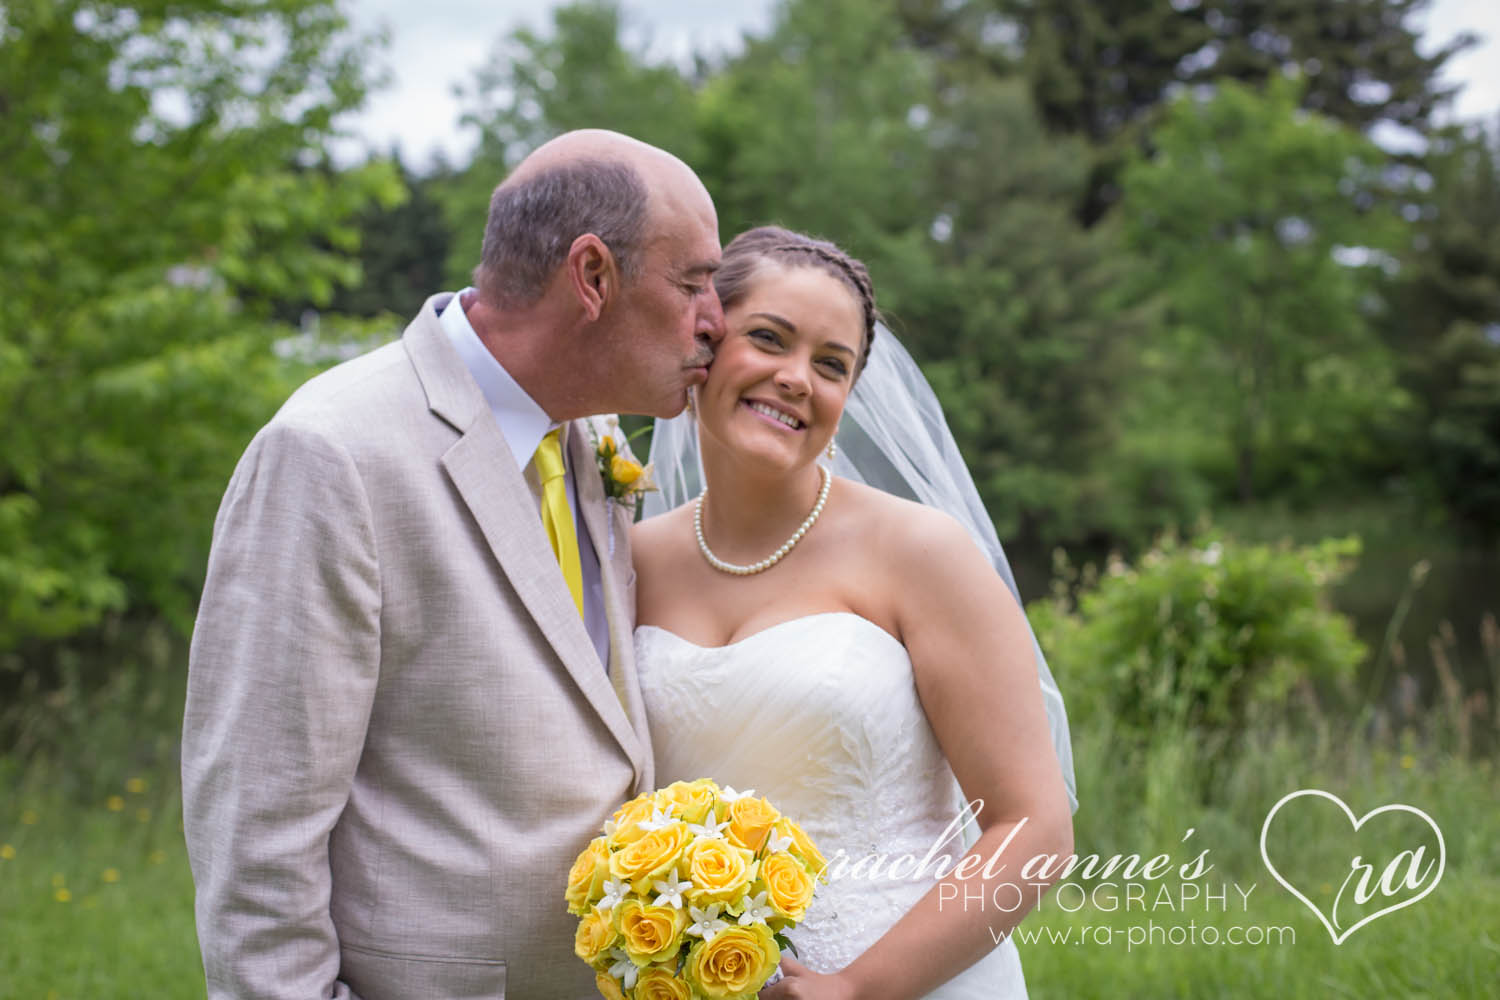 TKS-DUBOIS PA WEDDING-07.jpg